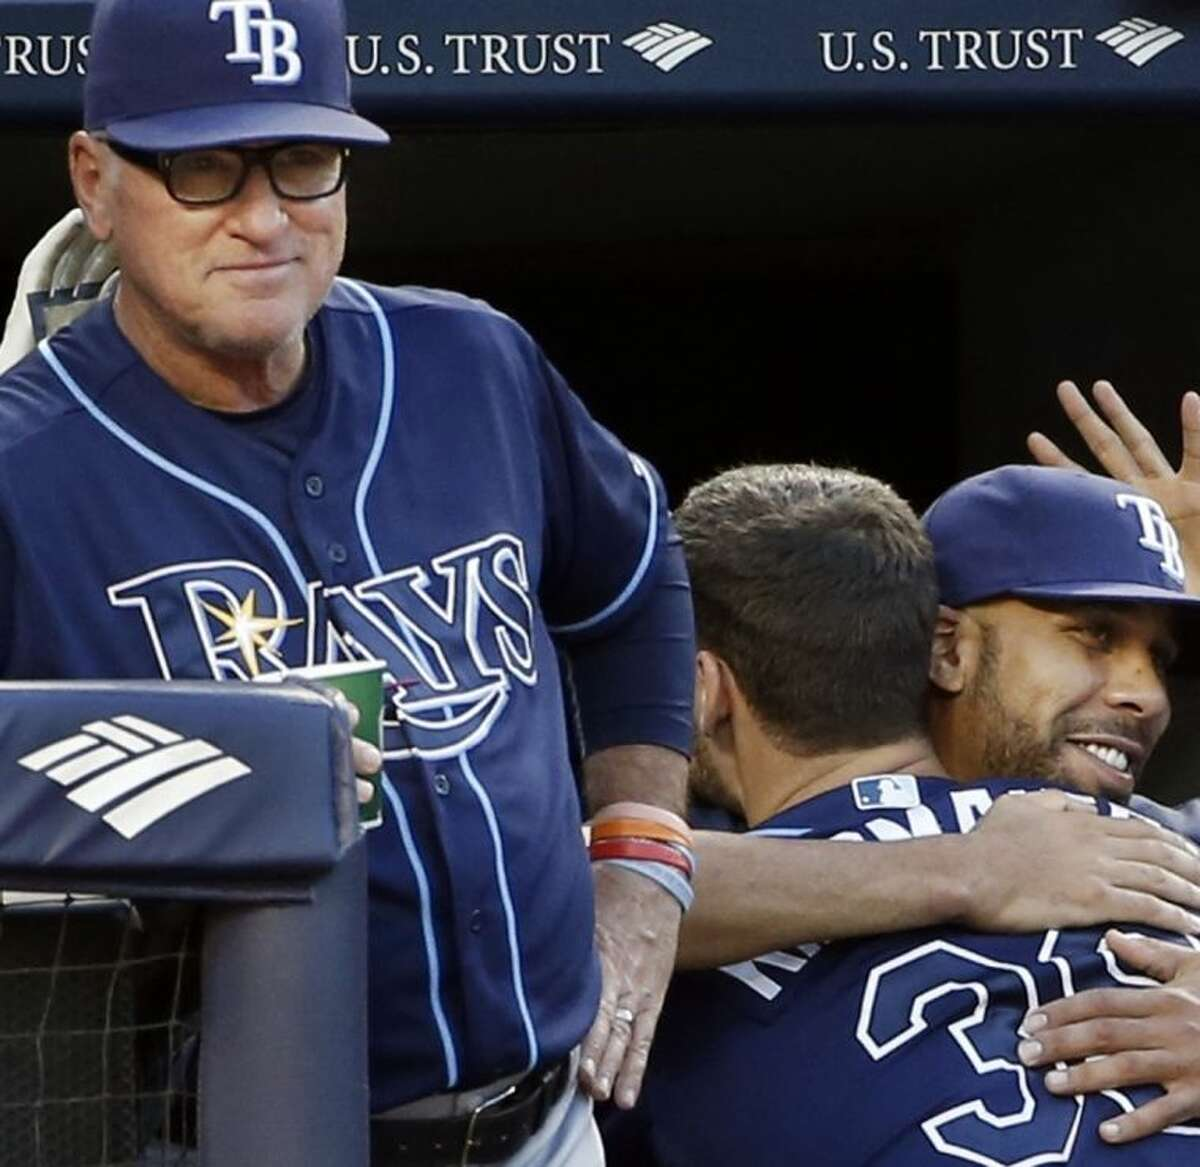 Tampa Bay Rays manager Joe Maddon stands near as Rays starting pitcher David Price, right, embraces Tampa Bay Rays Kevin Kiermaier after Kiermaier hit a third-inning solo home run in a baseball game at Yankee Stadium in New York, Monday, June 30, 2014. (AP Photo/Kathy Willens)